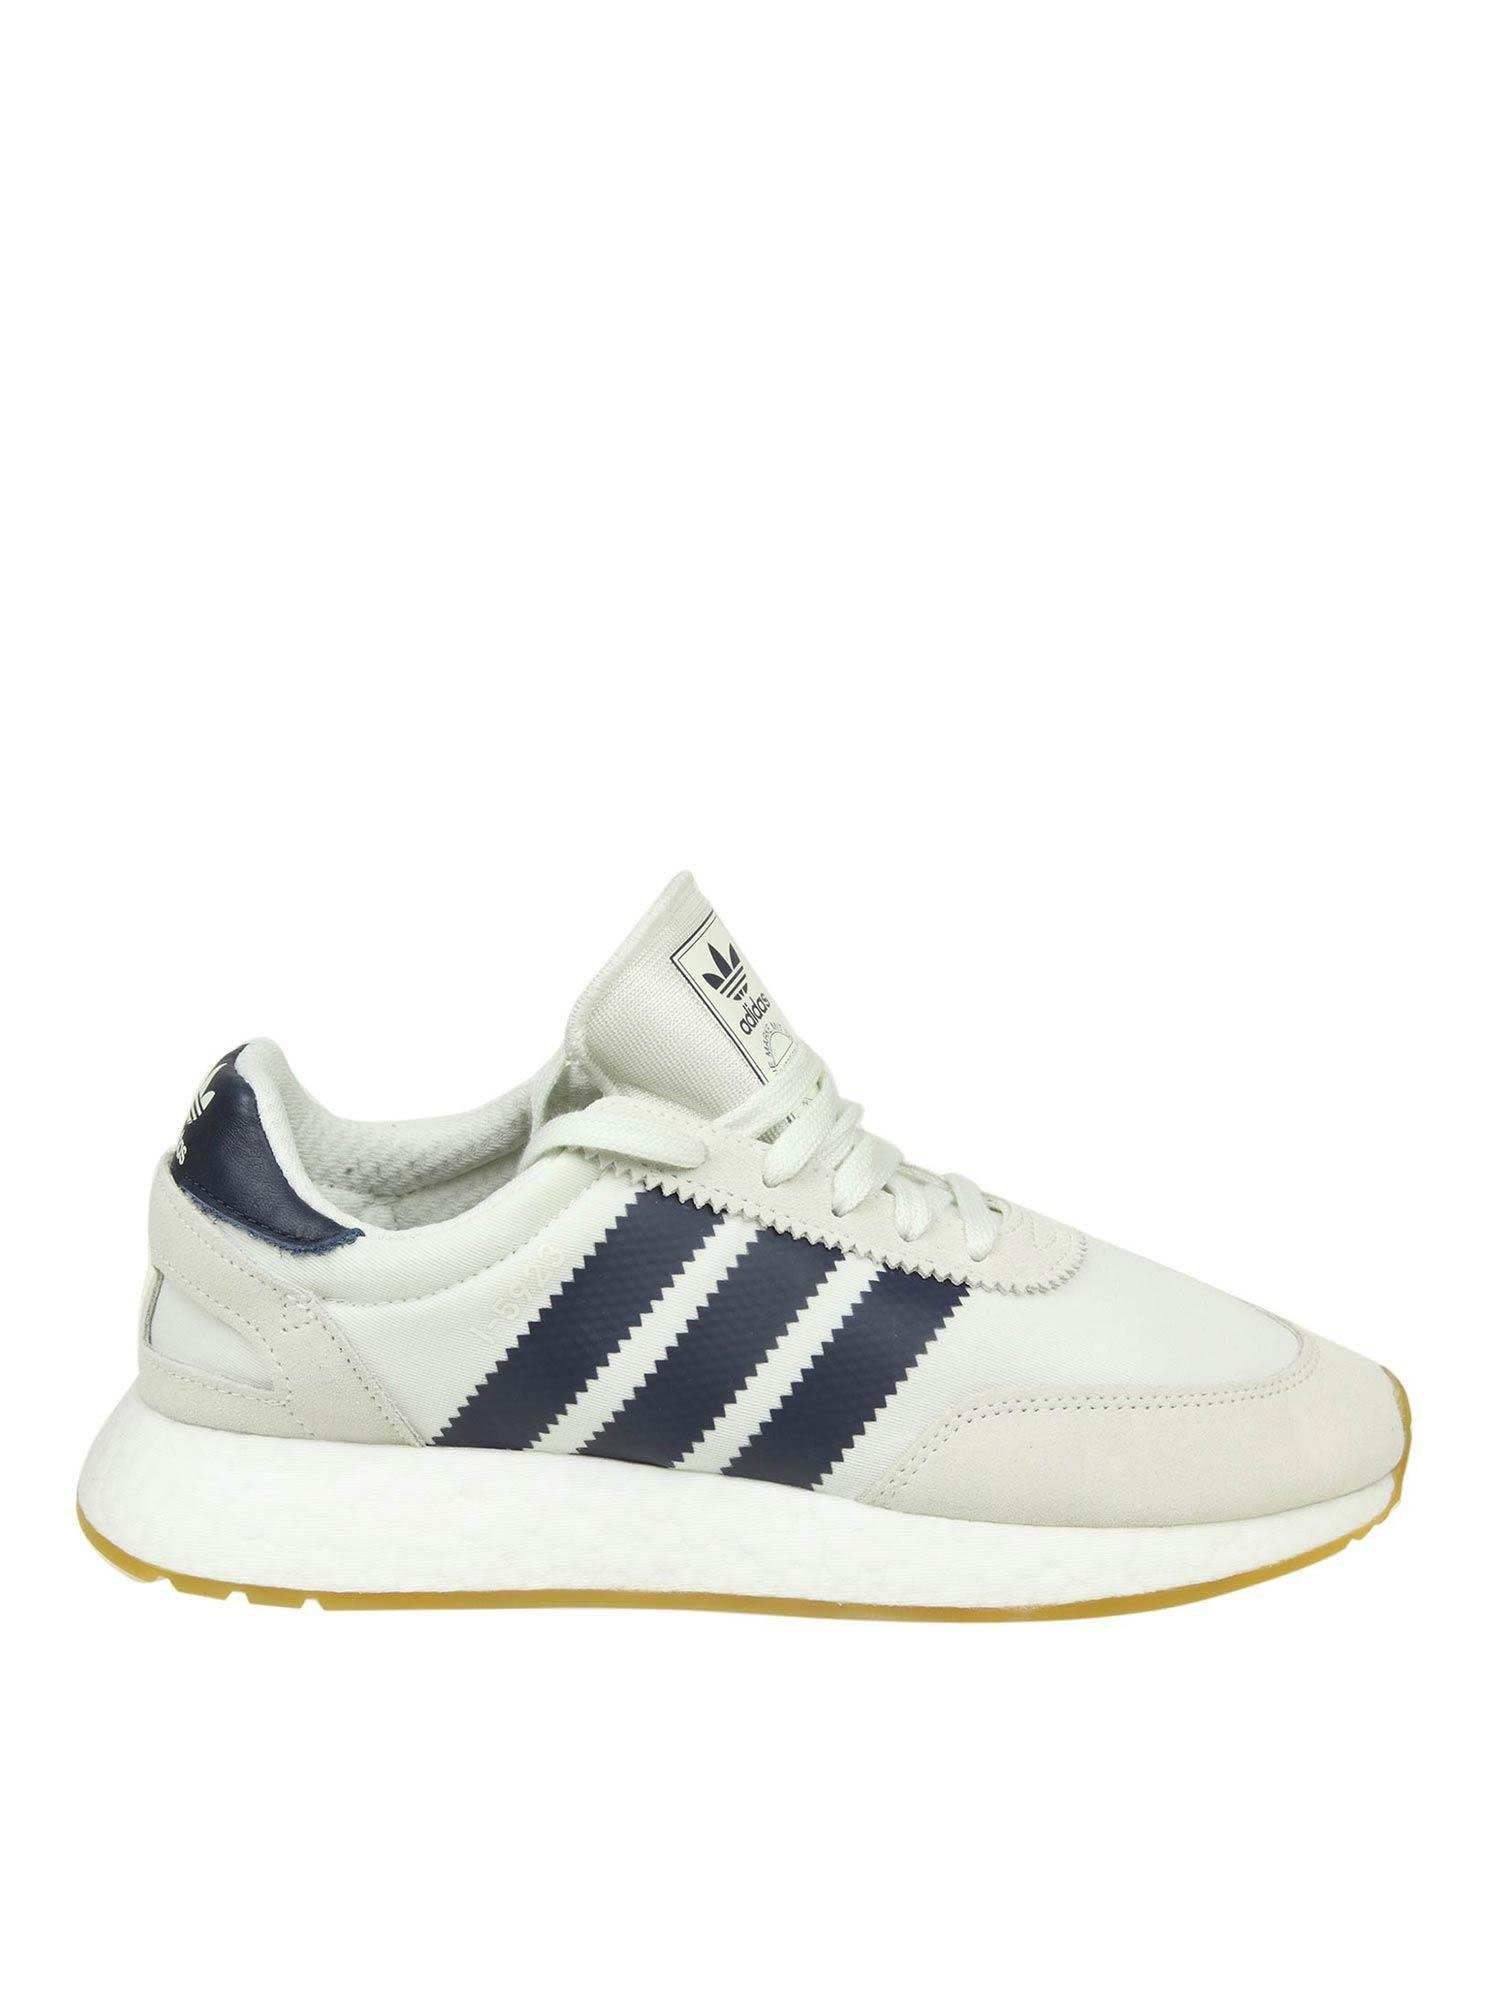 detailed look 91b07 14628 Adidas Originals I-5923 Runner Boost Sneakers In White Cq2489 - White